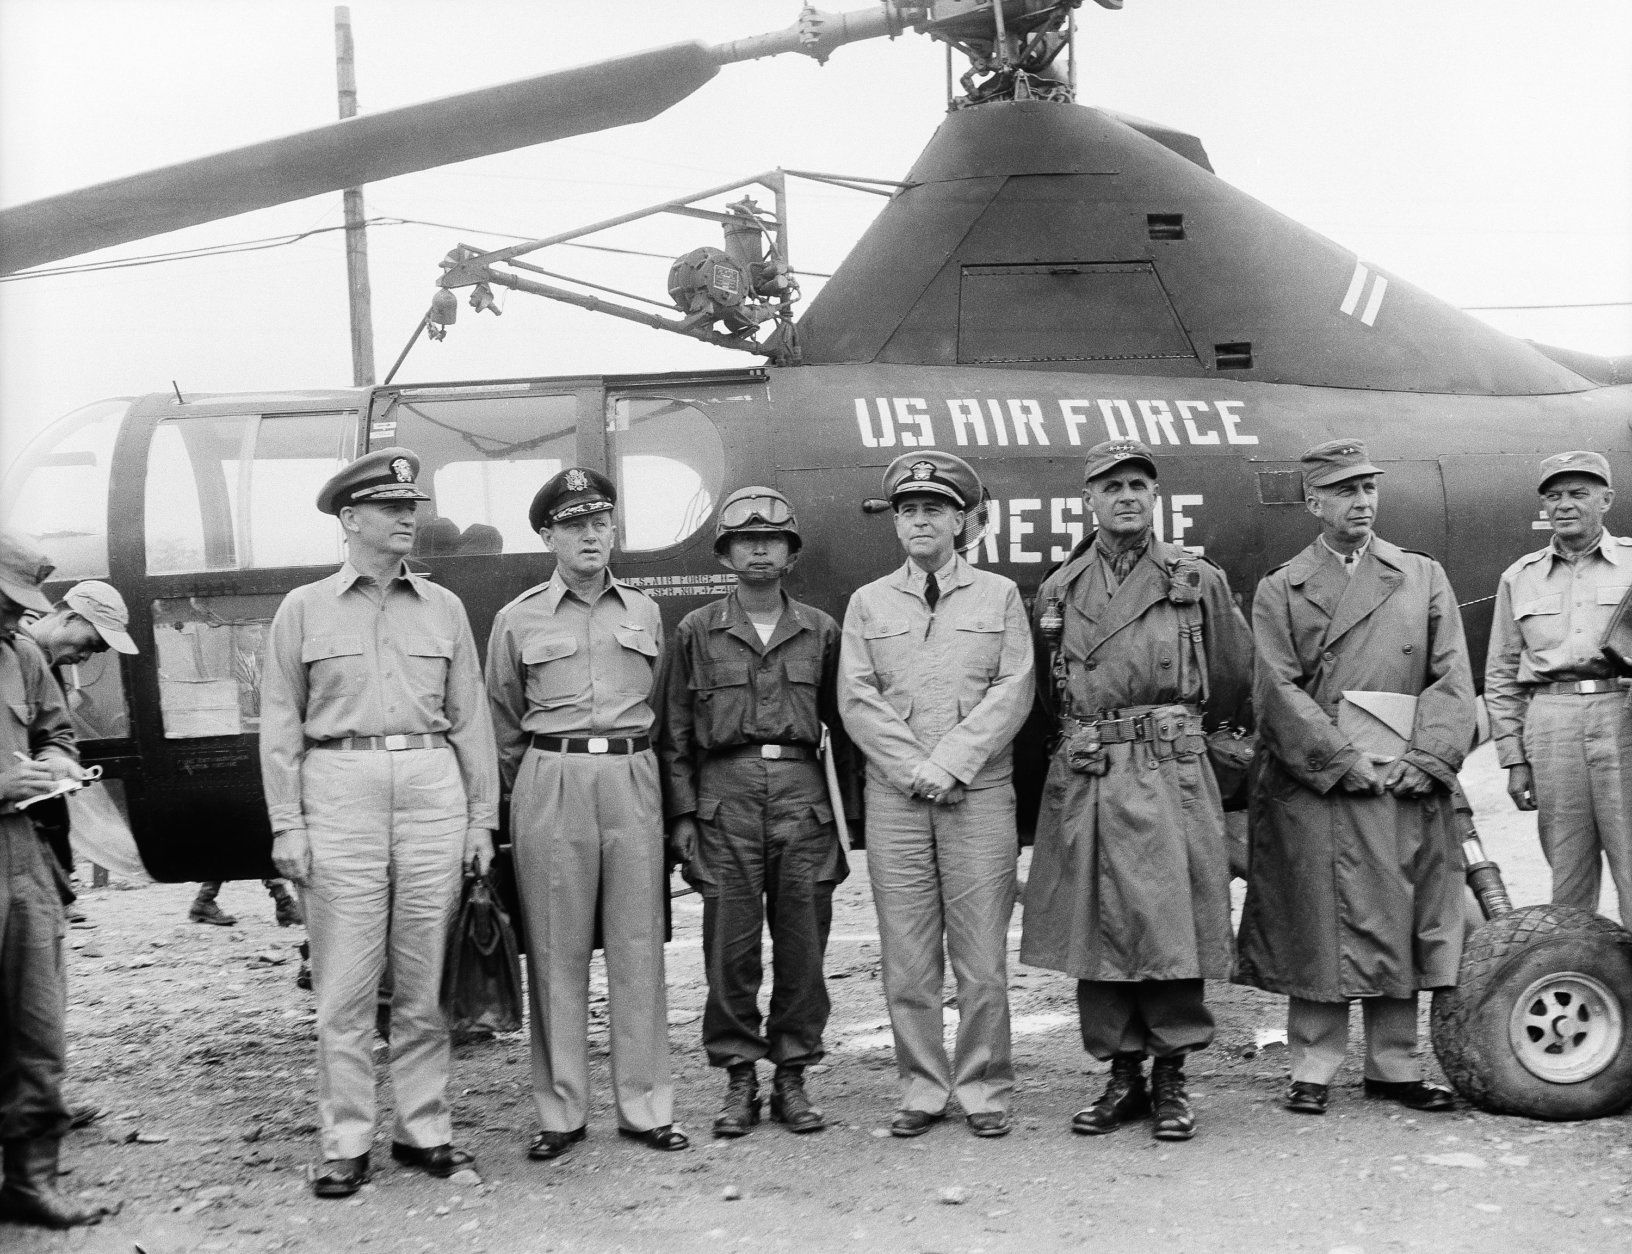 Gen. Matthew B. Ridgway, Supreme Commander (second from right), stands, with United Nations? negotiators before their departure from advance base camp in South Korea for peace conference at Kaesong, July 10, 1951. From left: rear Adm. Arleigh Burke; Maj. Gen. L.C. Craigie; Gen. Paik Sun Yup, South Korean Army; Vice Adm. C. Turner Joy, Senior Negotiator; Gen. Ridgway, and Maj. Gen. Henry I. Hodes. (AP Photo/Jim Pringle)